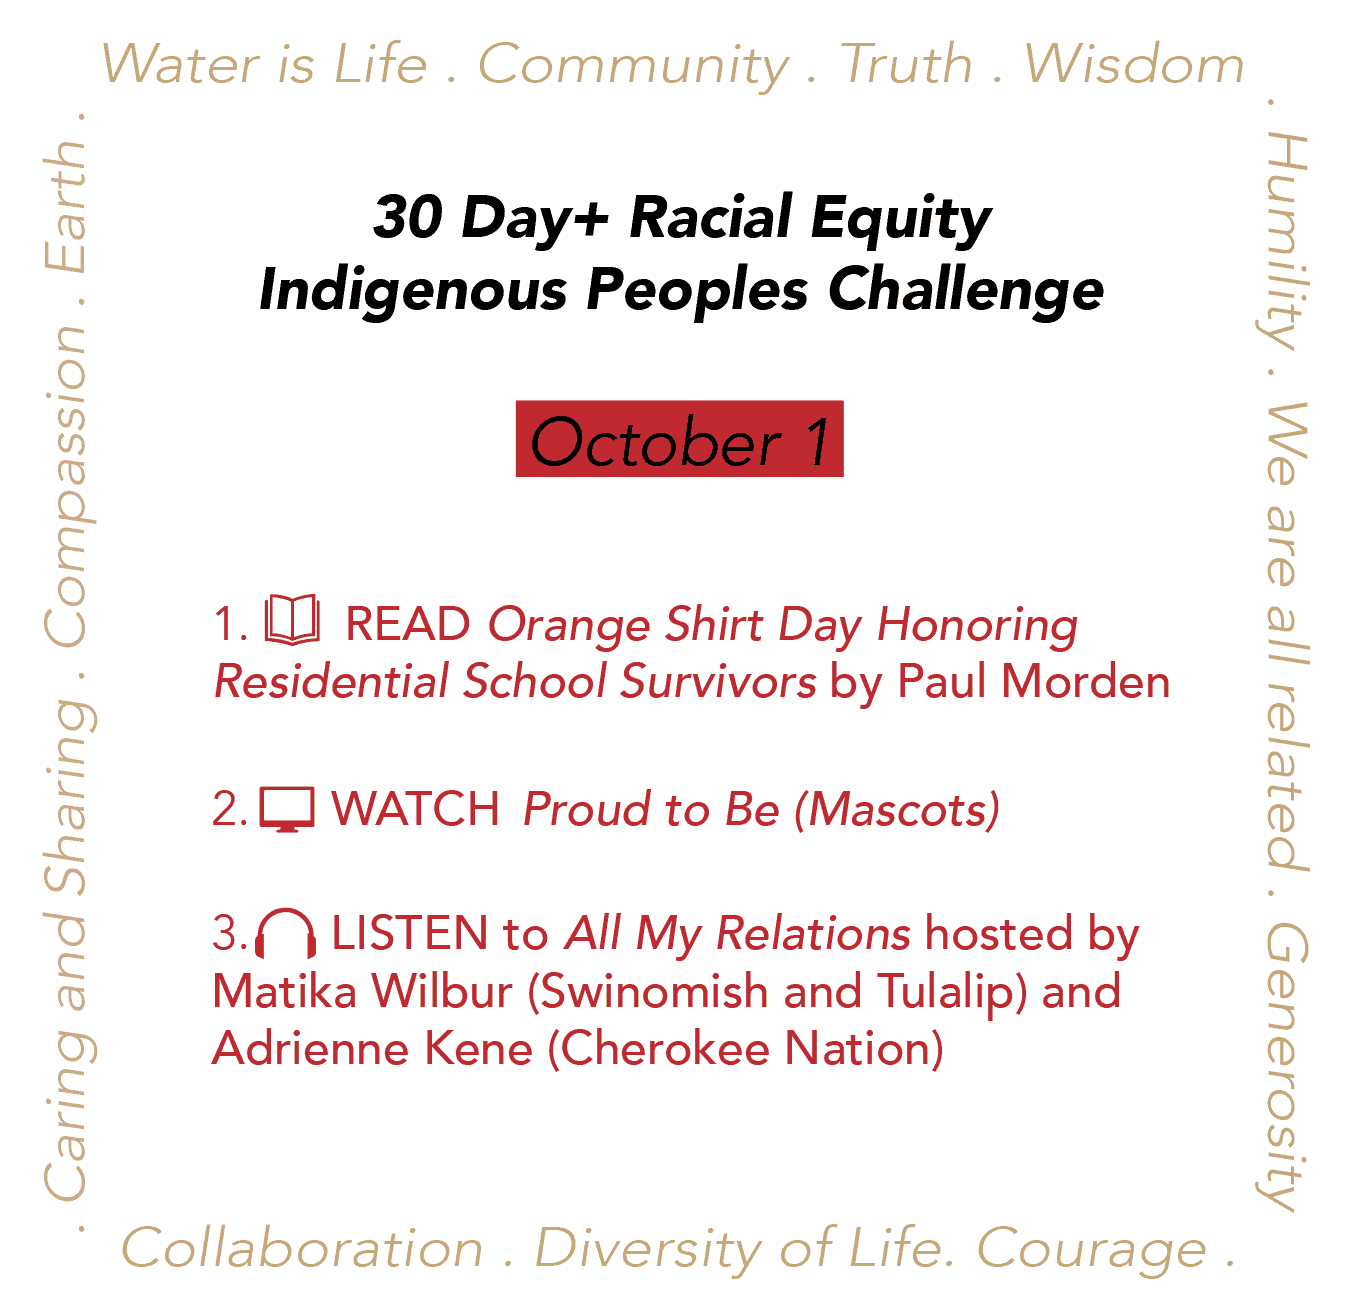 Day 1: Racial Equity Indigenous Peoples Day Challenge